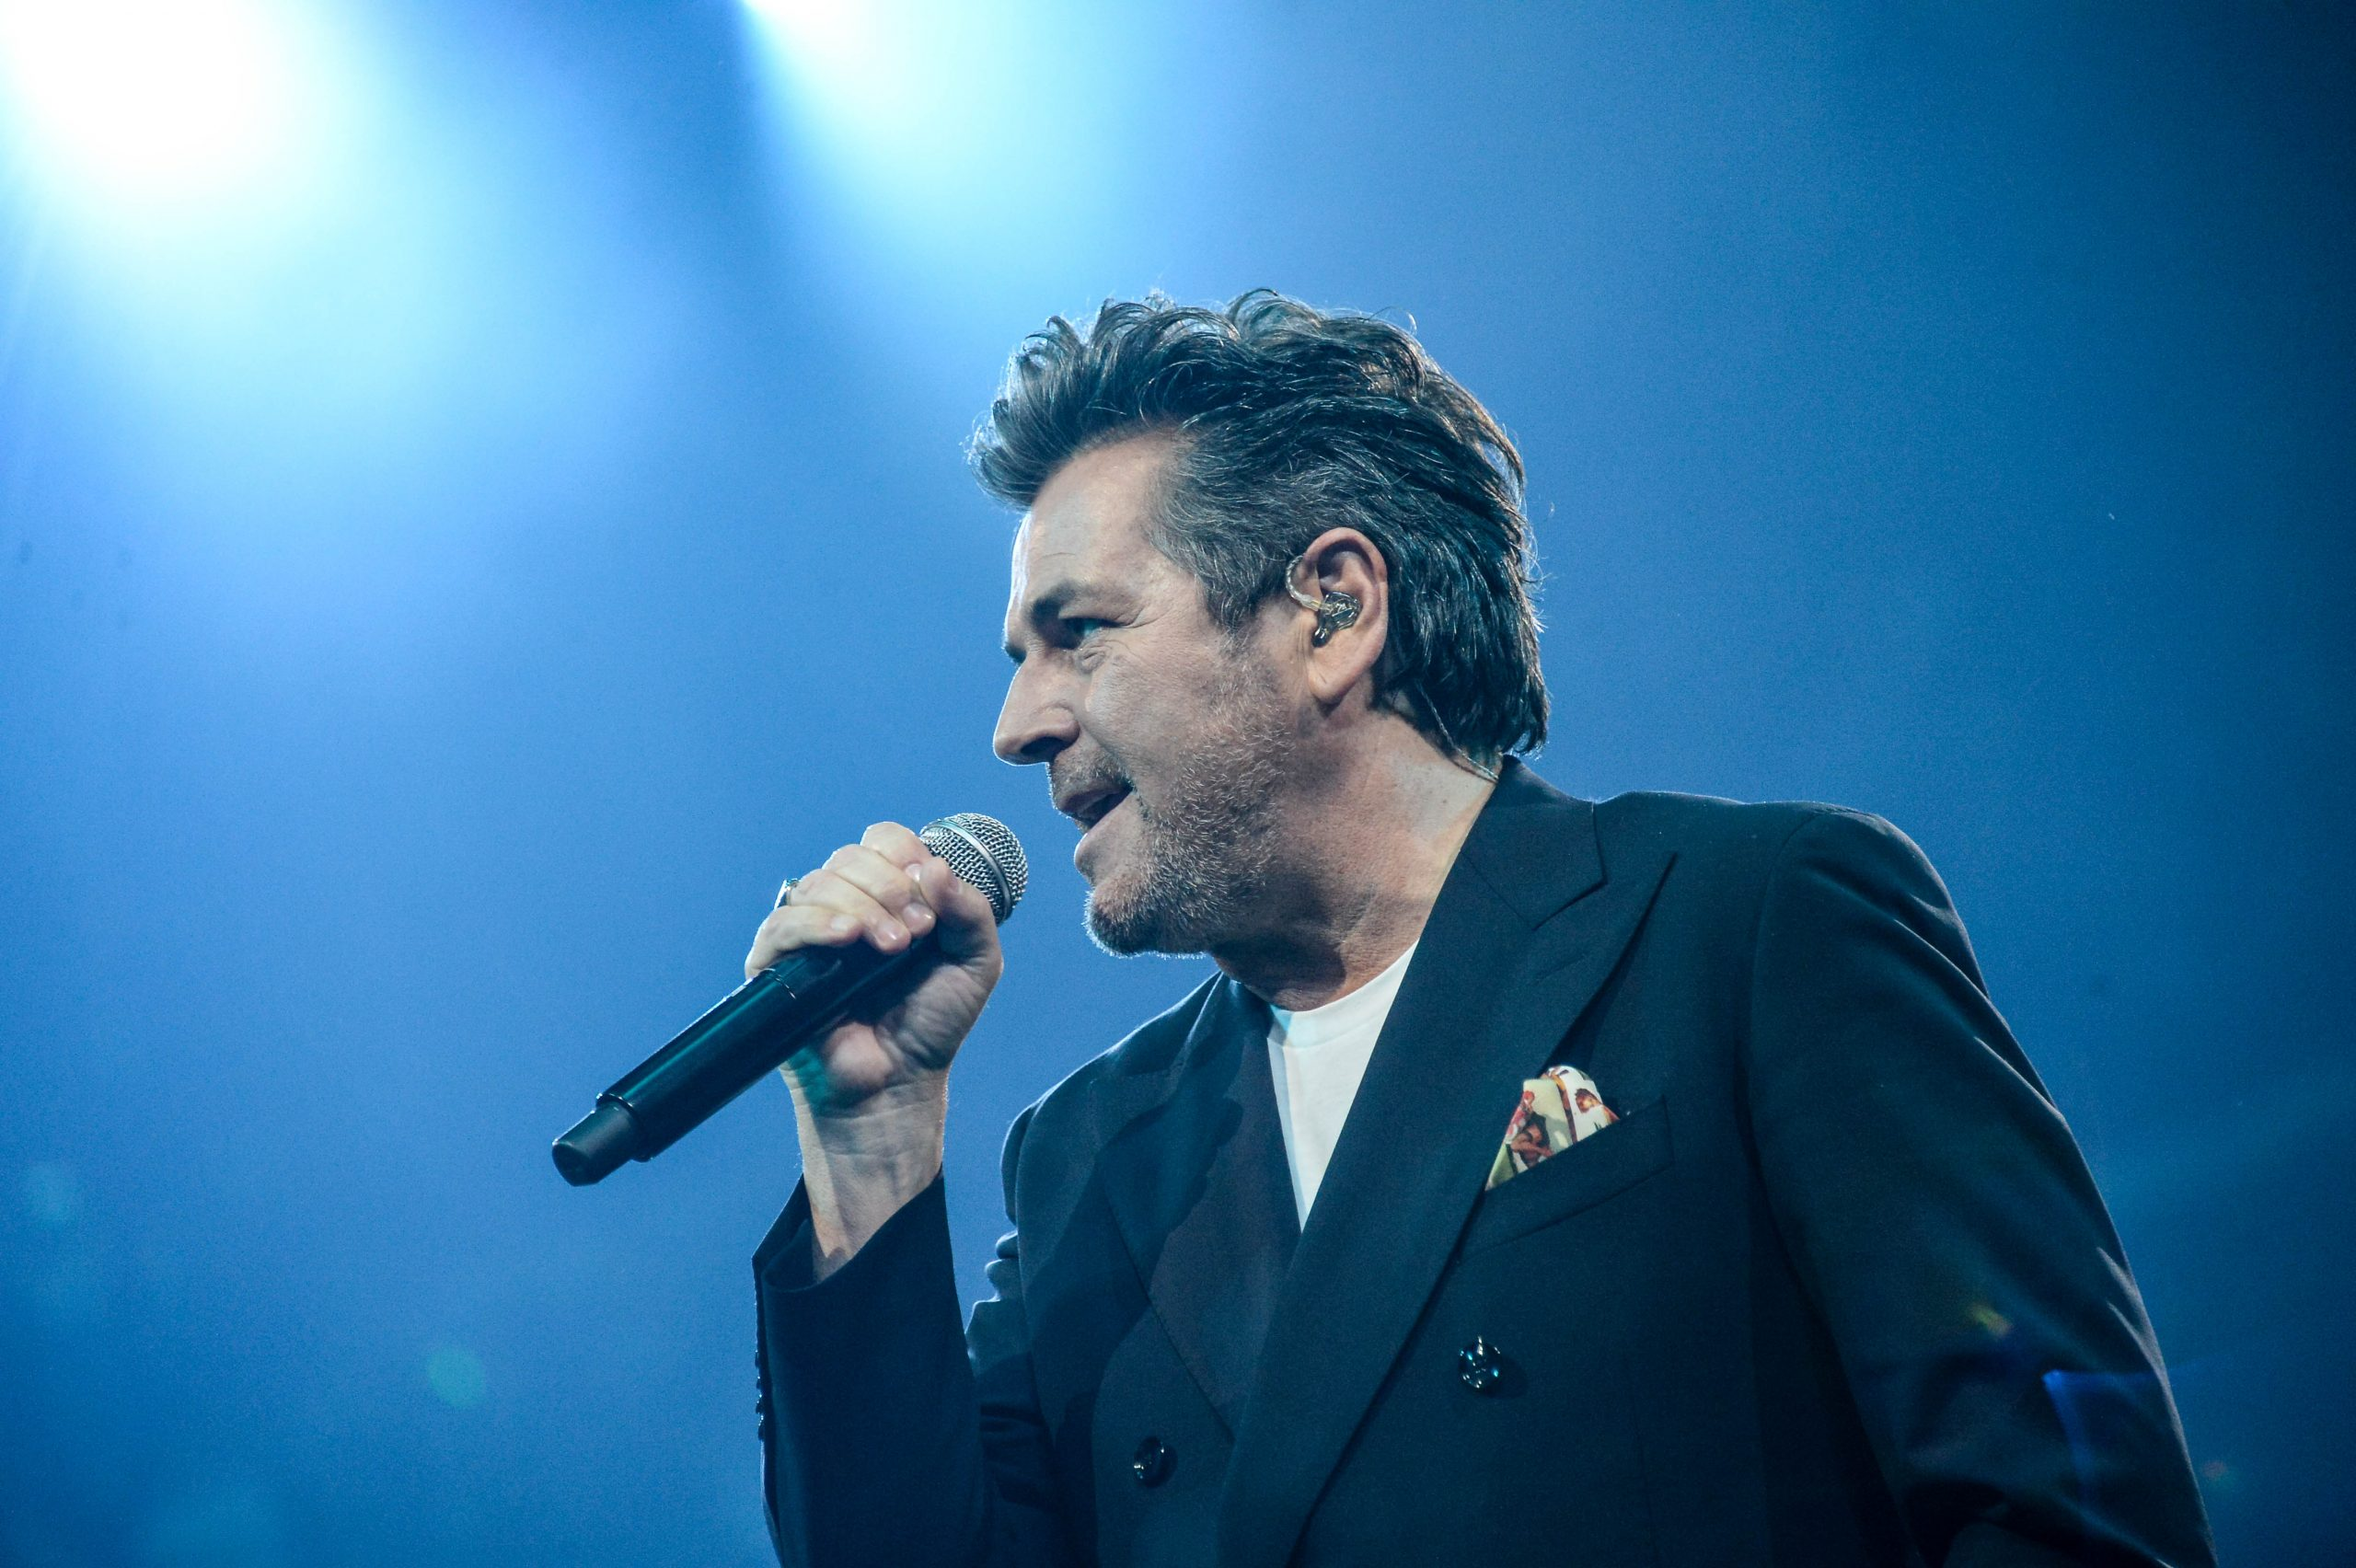 Thomas Anders – Brother Louie (2019)